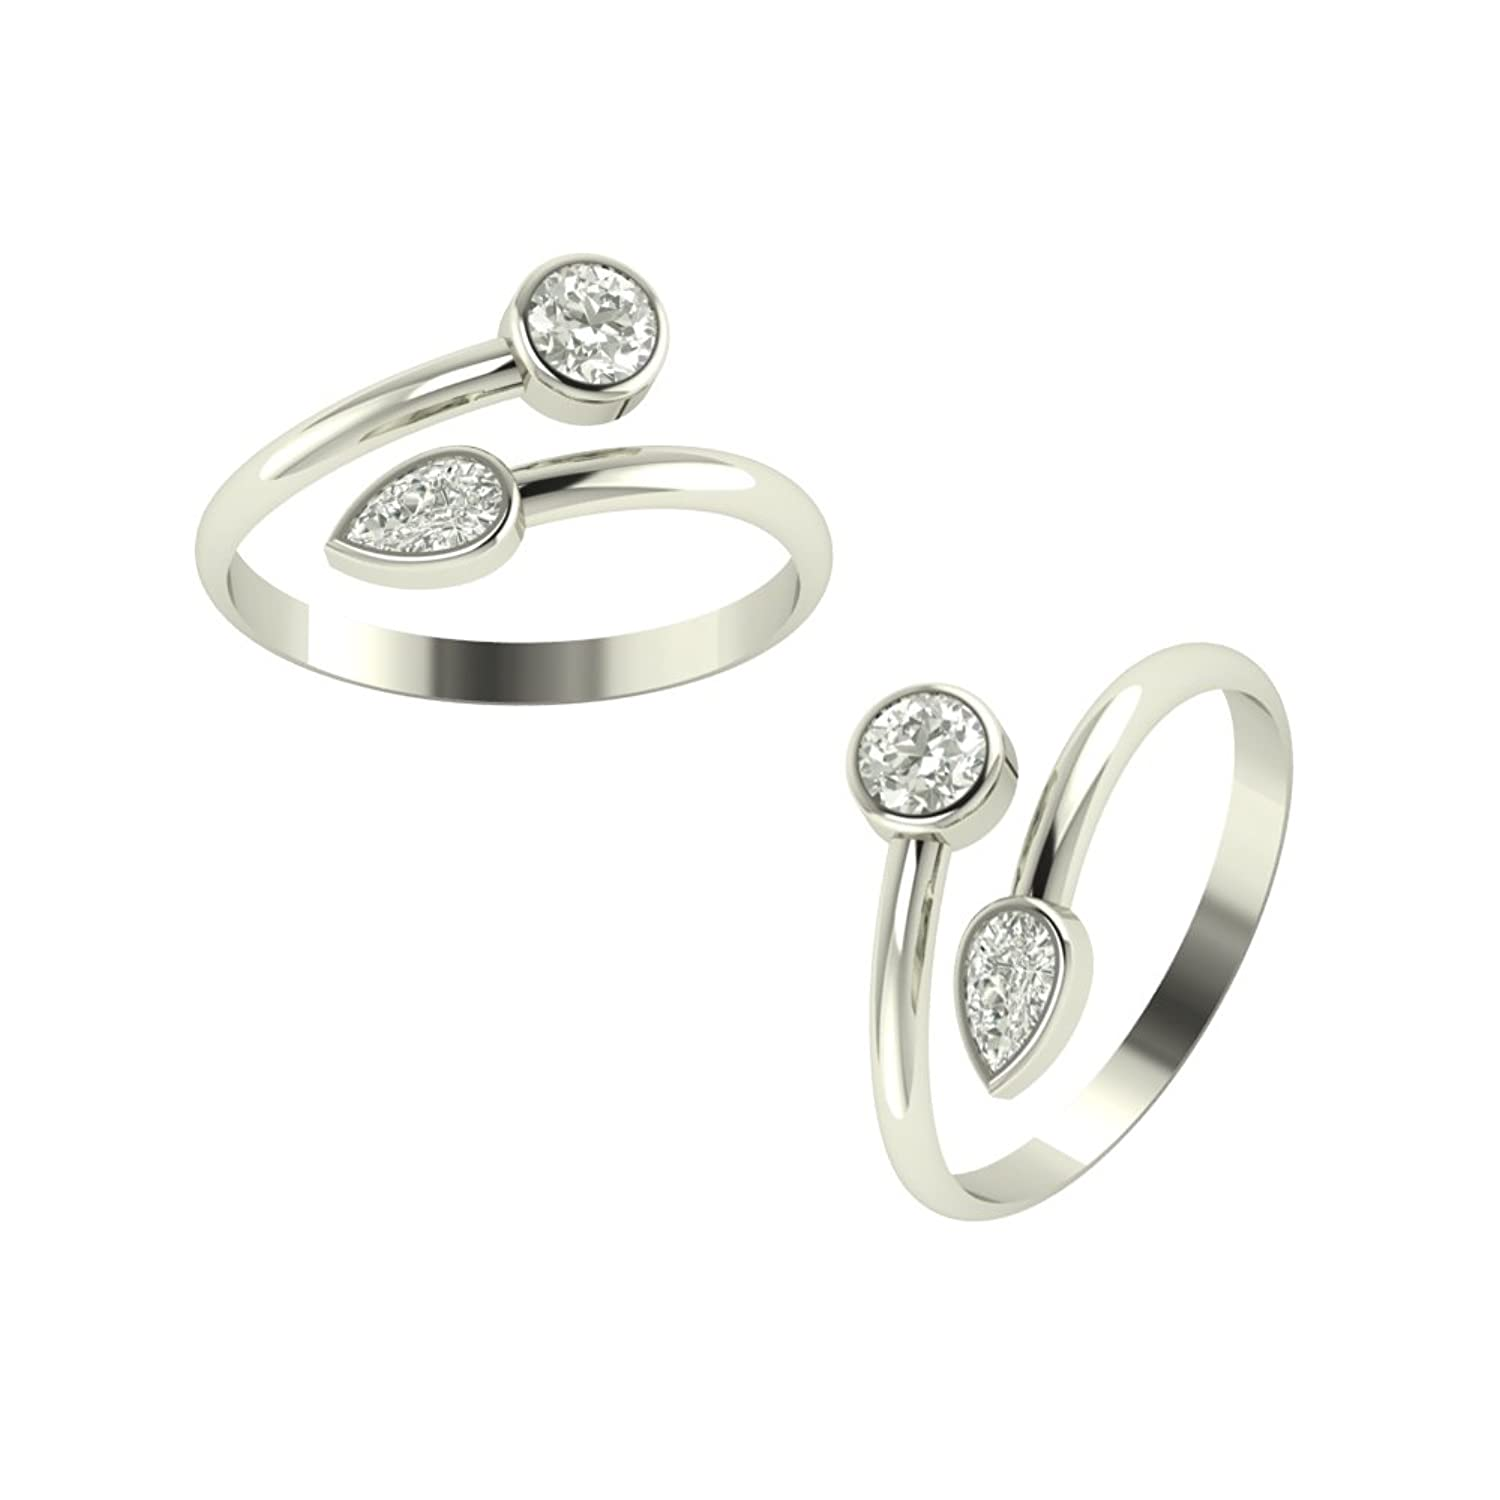 Silver Collection!! 20% - 50% Off On Silver Products By Amazon | Peenzone 92.5 Sterling-Silver Toe Rings For Women @ Rs.450